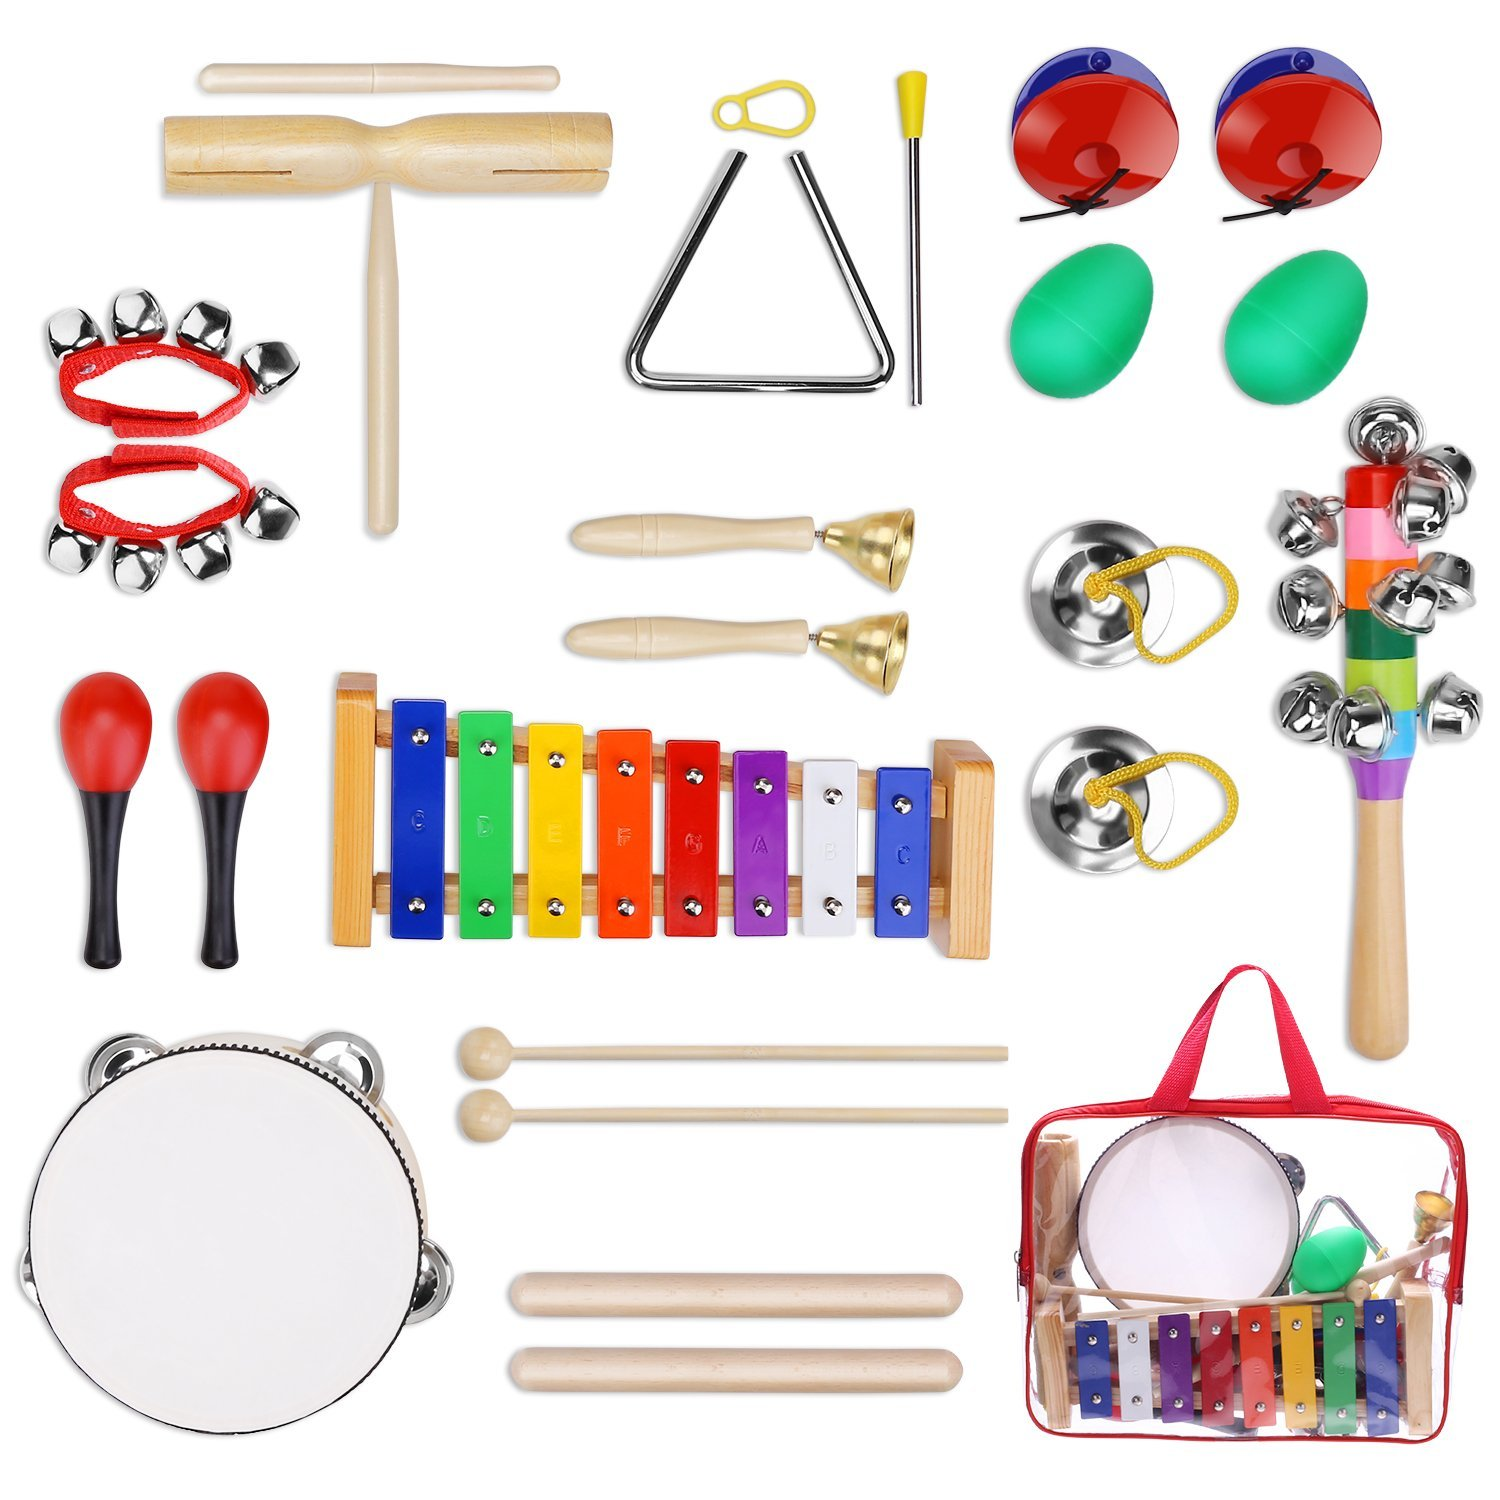 12pc Kids Musical Instrument Set At A Low Price